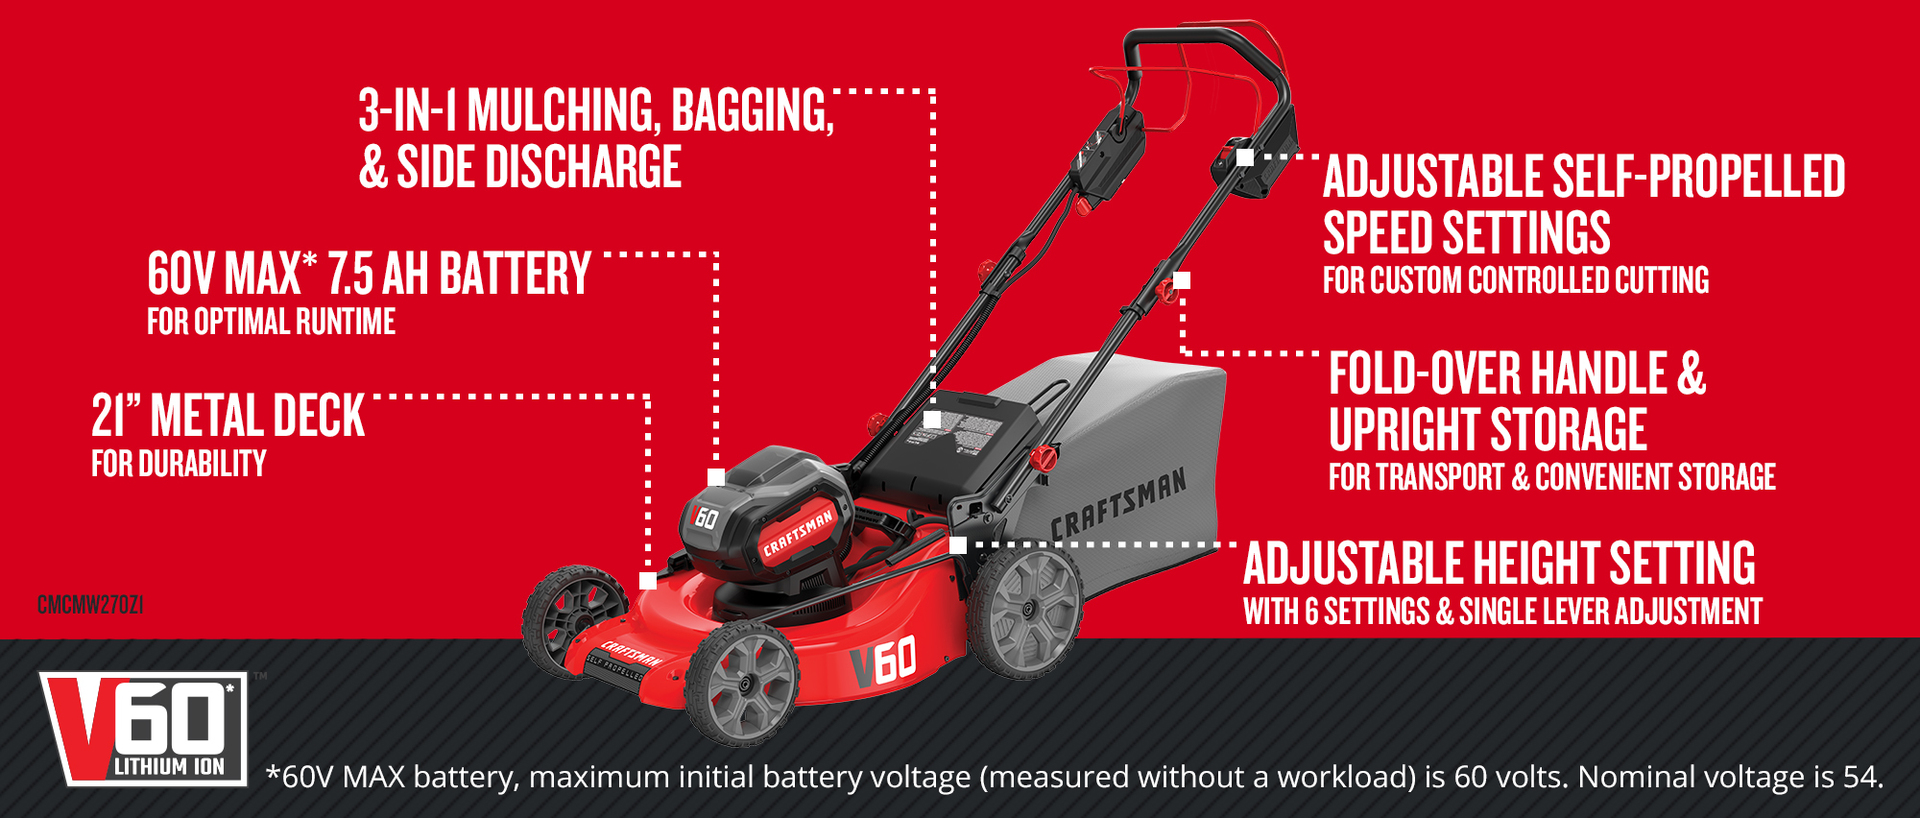 CRAFTSMAN V60 60-Volt Max Lithium Ion Self-propelled 21-in